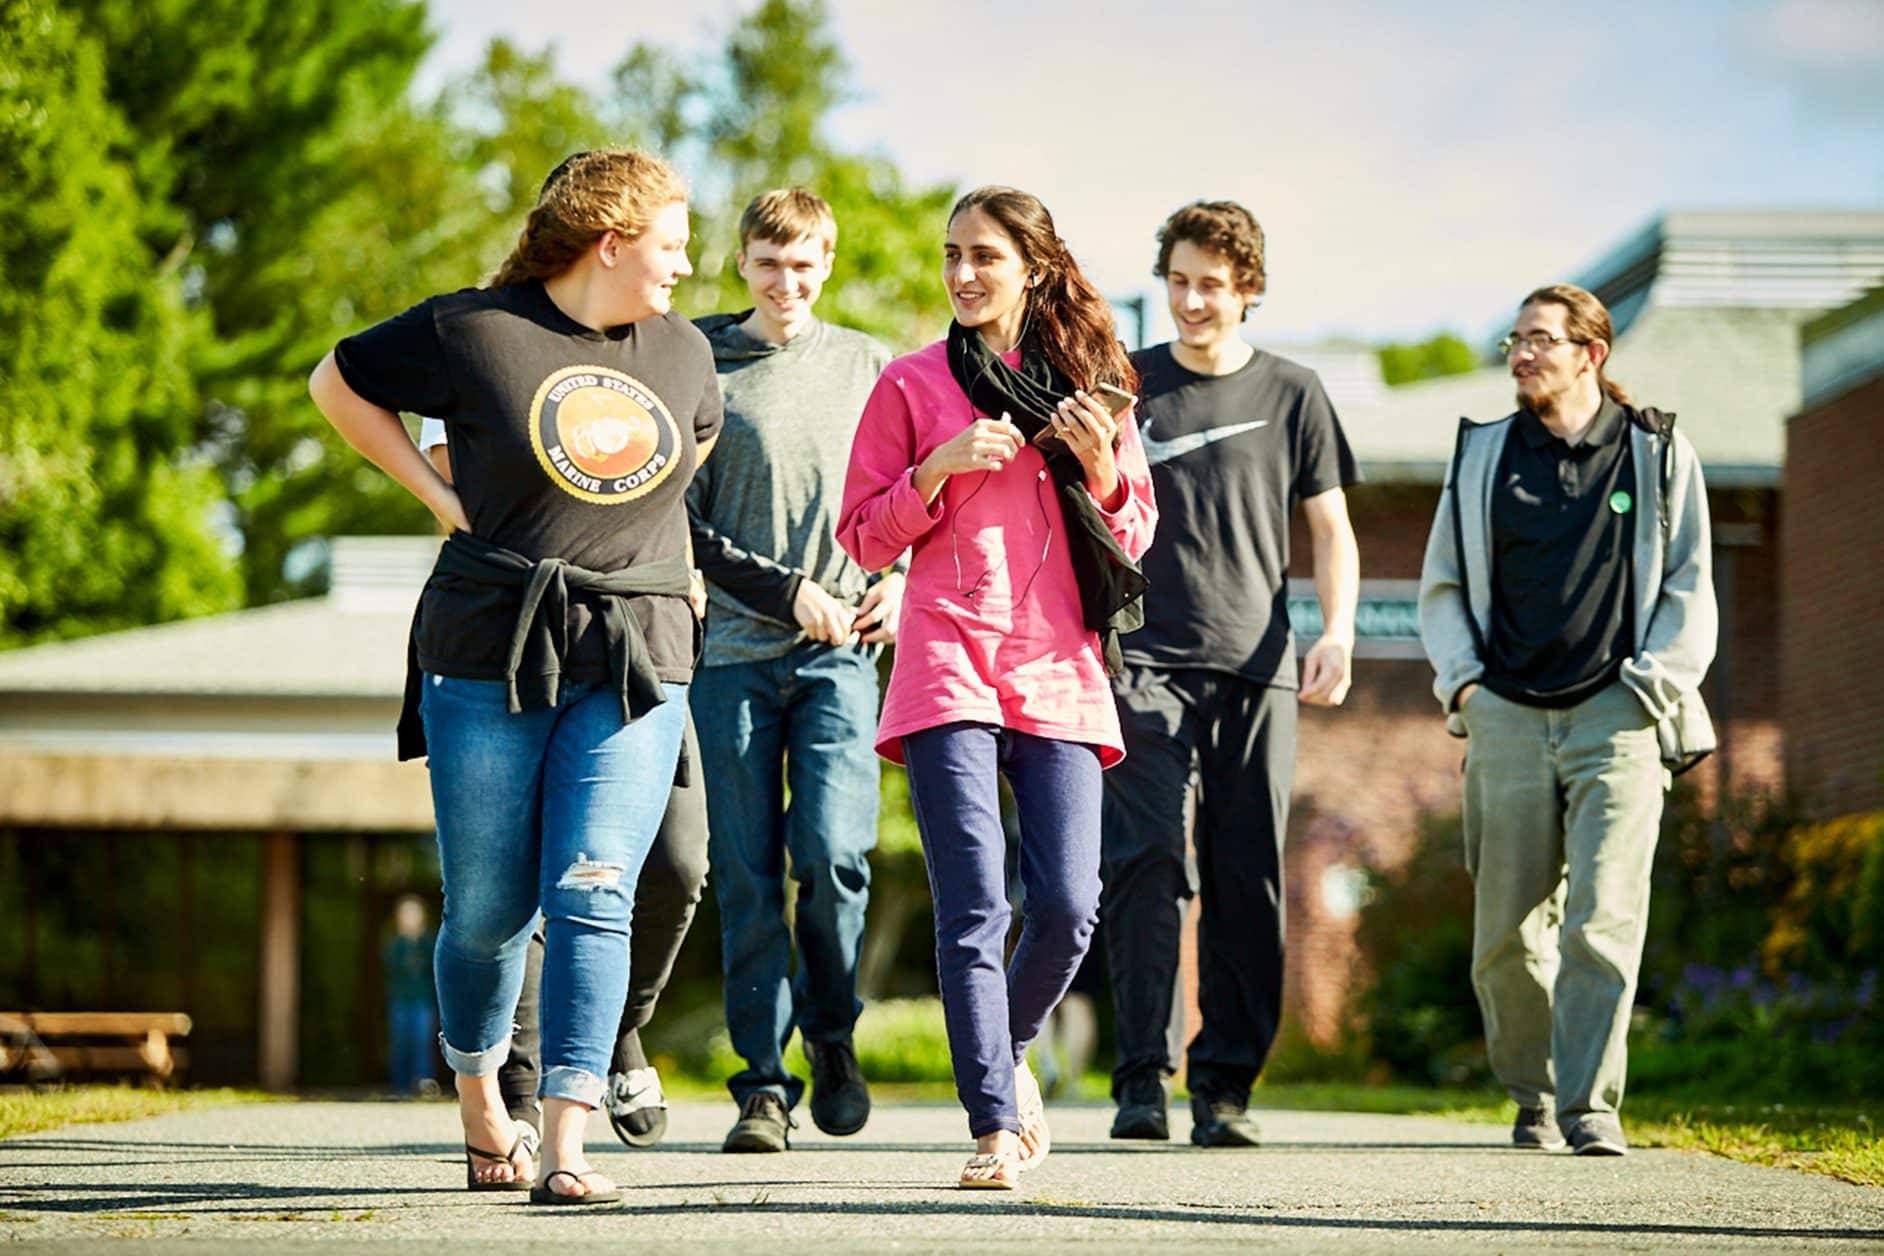 female students, male students, walking, sun, smiling, happy